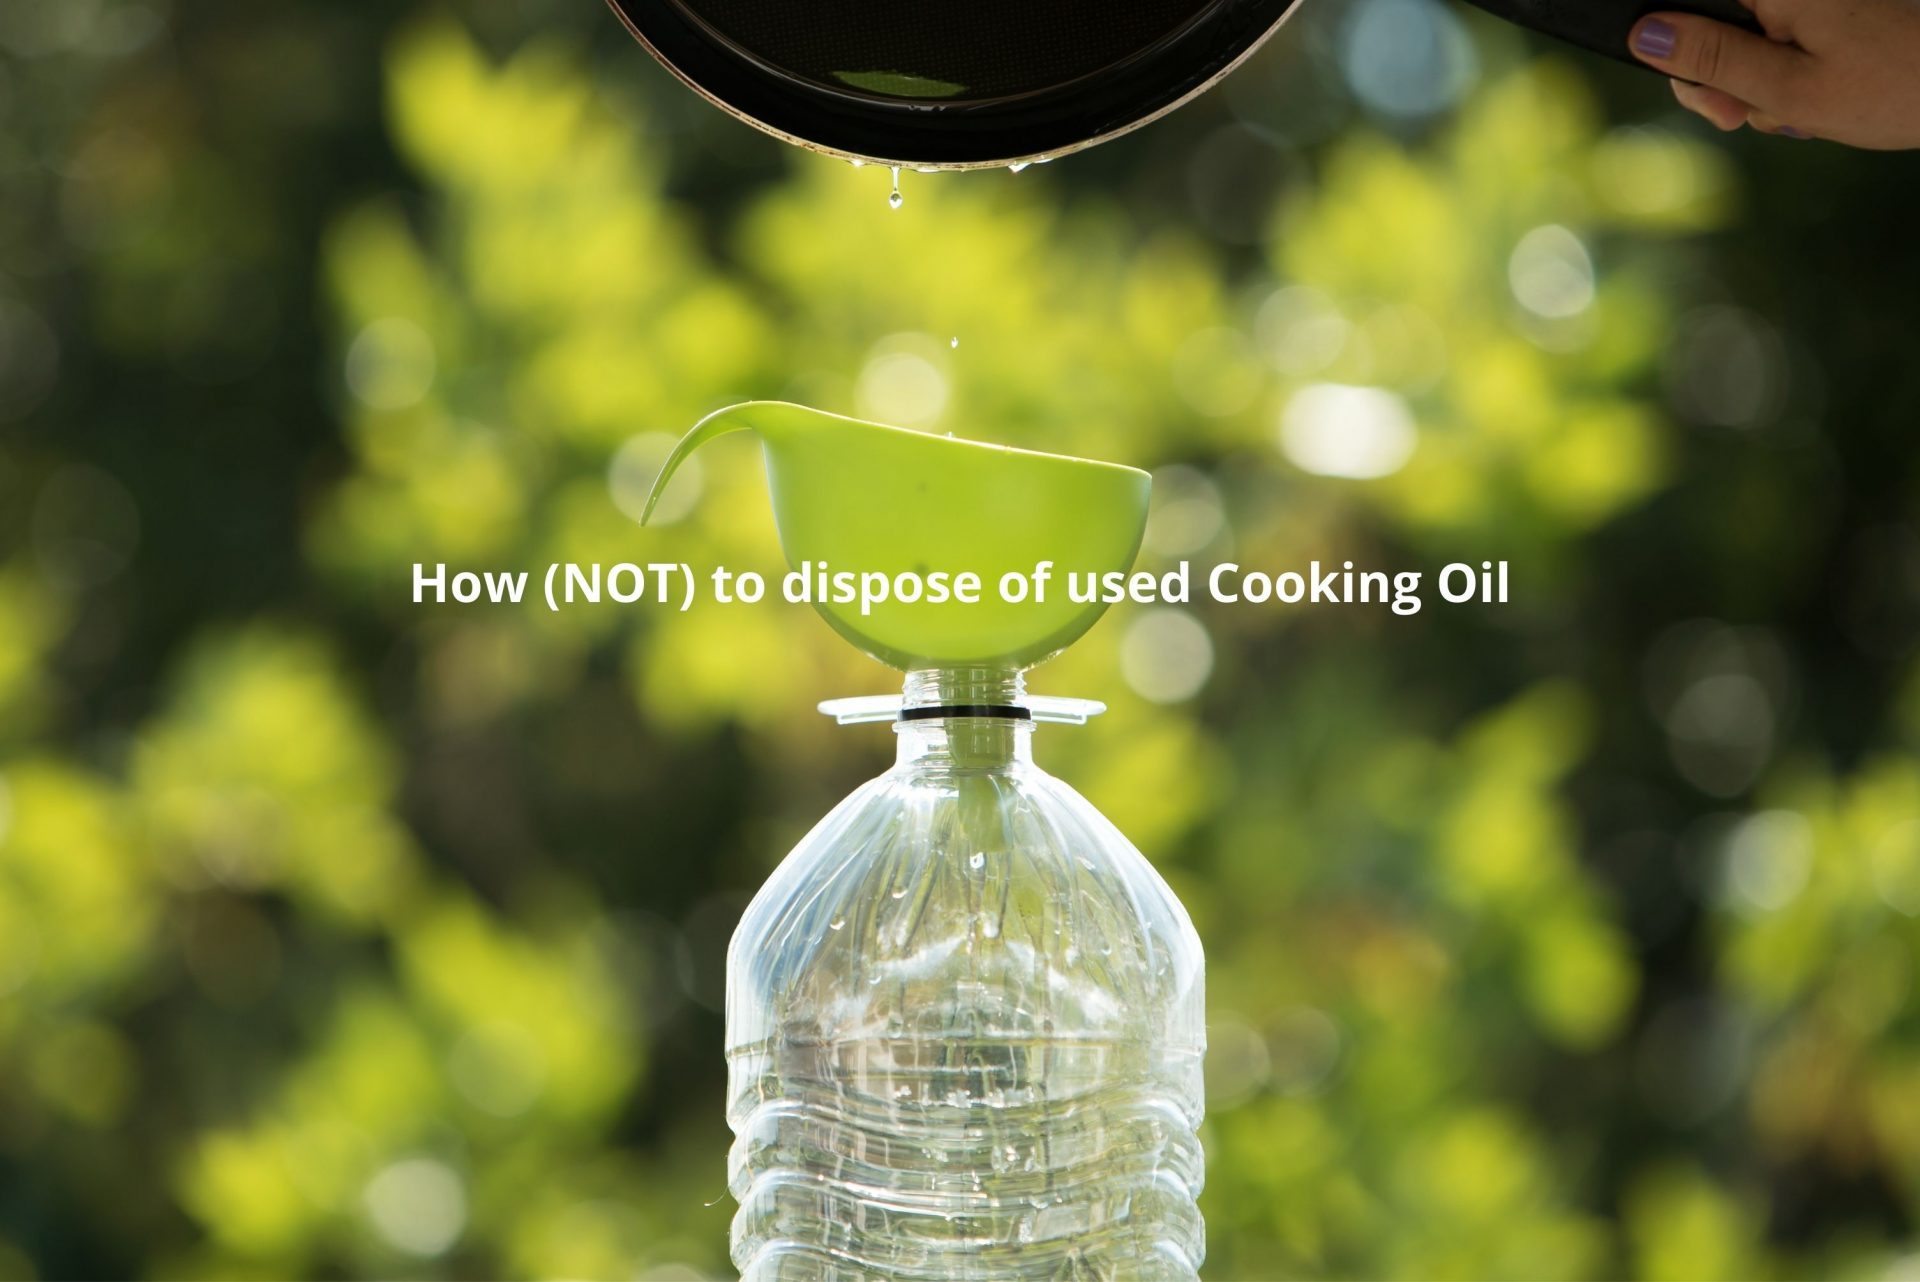 How (NOT) to dispose of used Cooking Oil